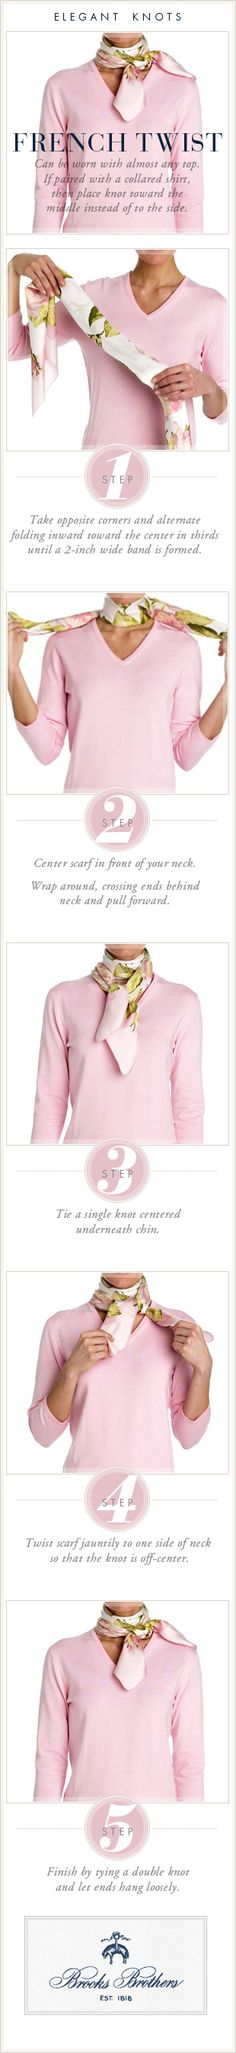 French Twist for scarves.And,if the scarf is Hermes,you need to know how to say that.Here is where to do a little French Fashion pronunciation 101.http://www.vogue.com.au/fashion/news/galleries/designer+pronunciation+101+the+ultimate+guide,27357?pos=1